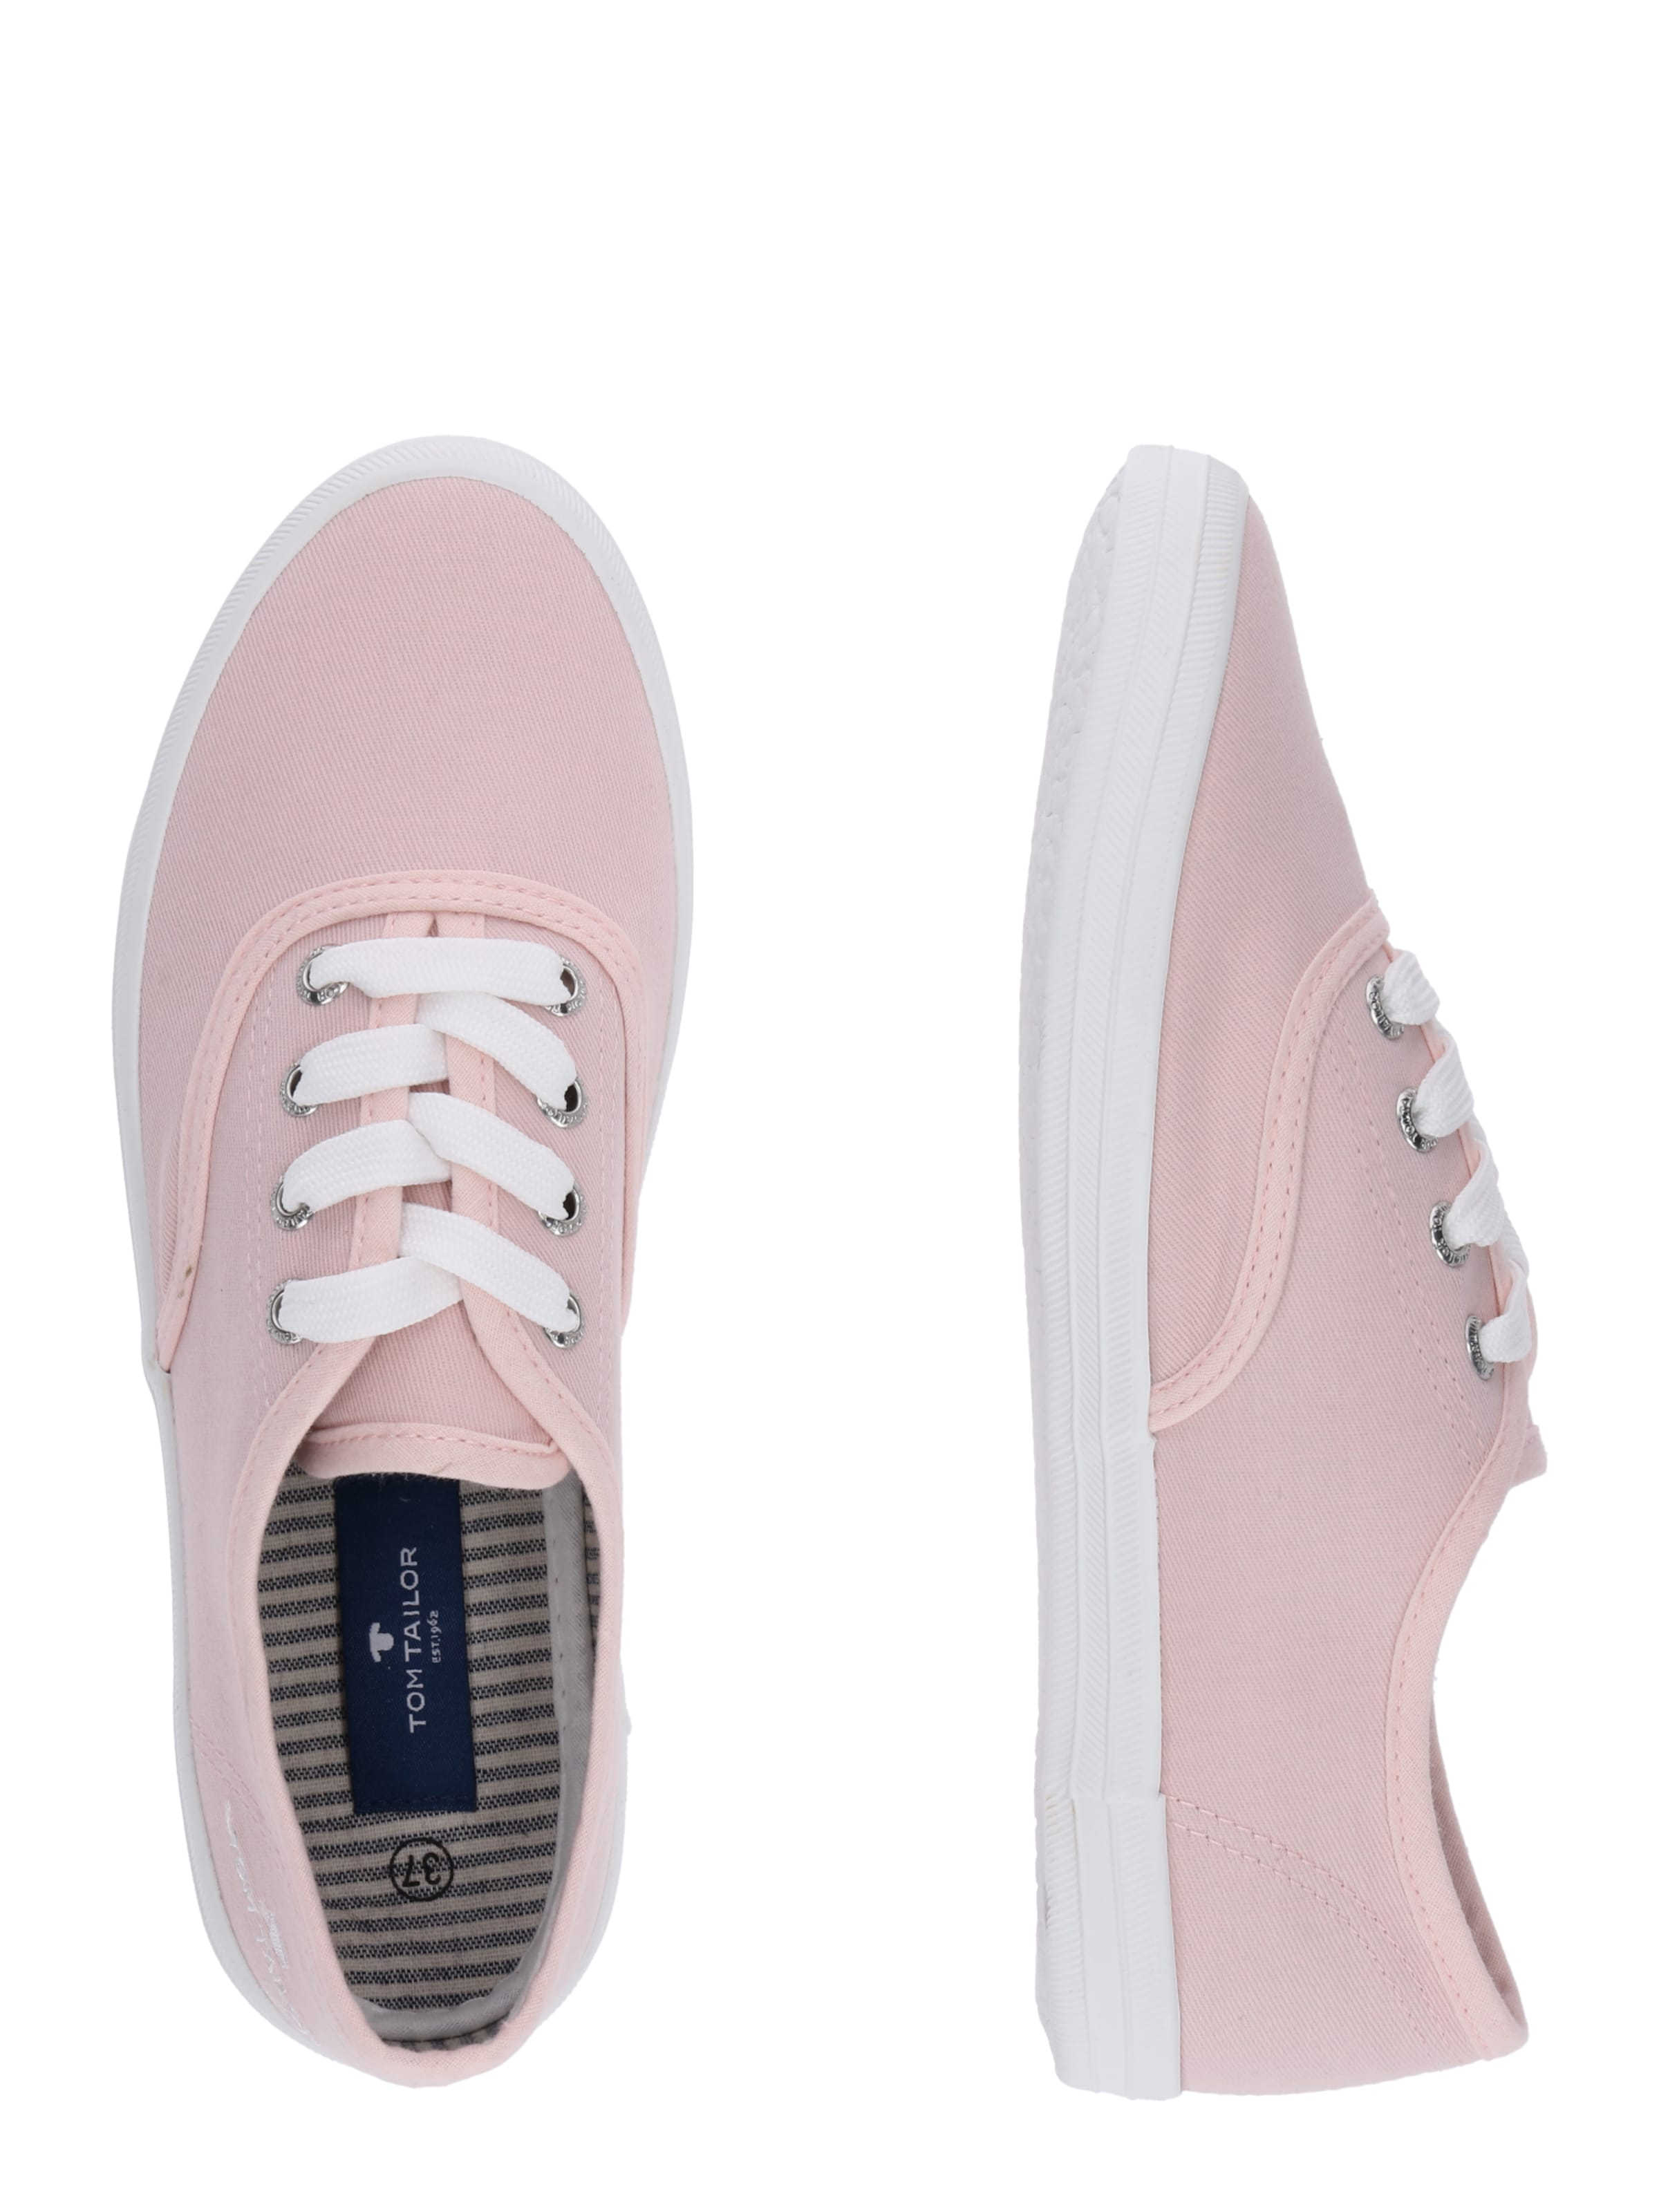 Basses Tom Baskets En Tailor Rose N8n0wm